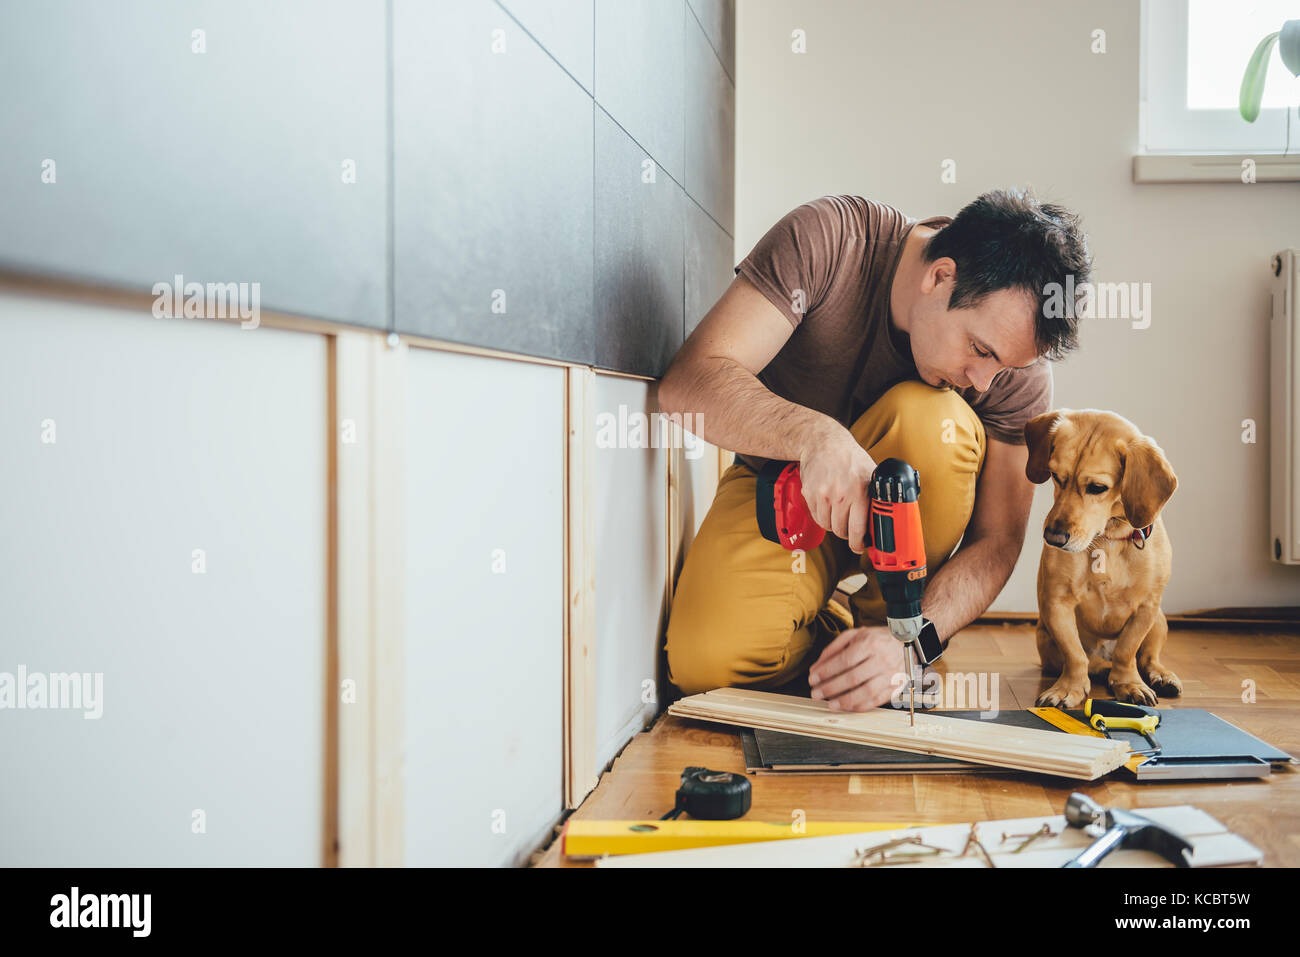 Man doing renovation work at home together with his small yellow dog - Stock Image